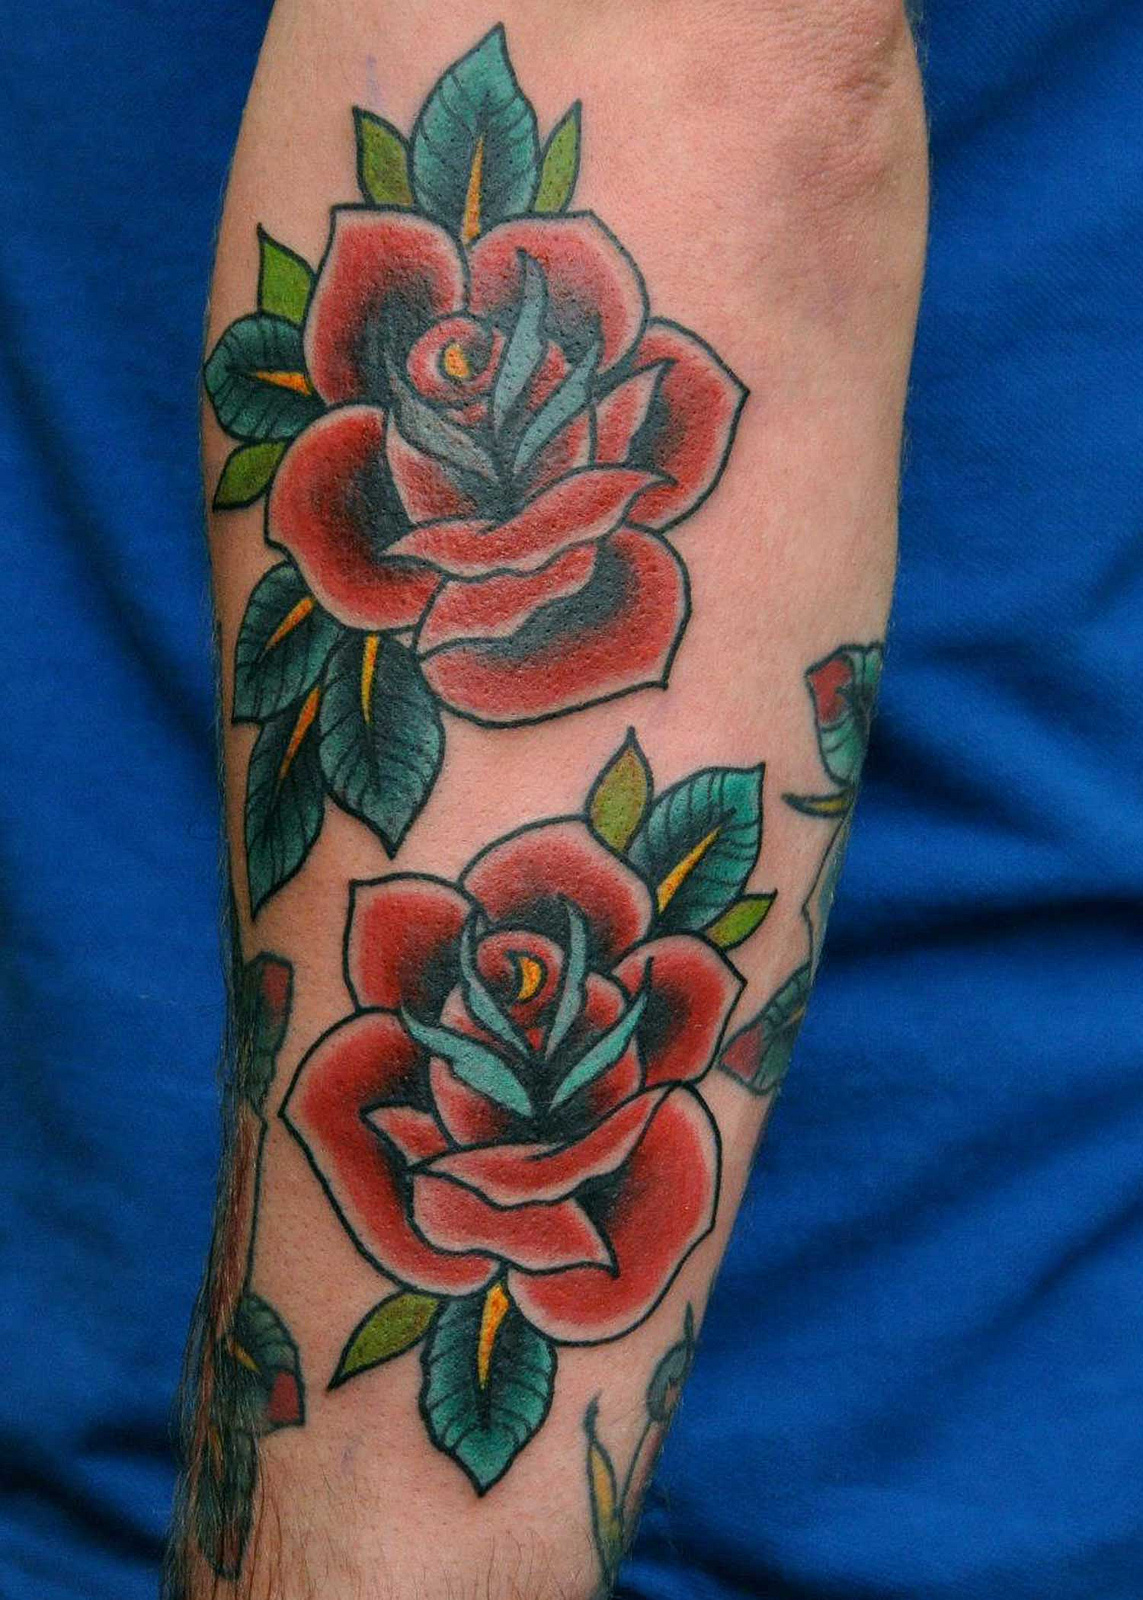 1143 x 1600 jpeg 807kBTattoo